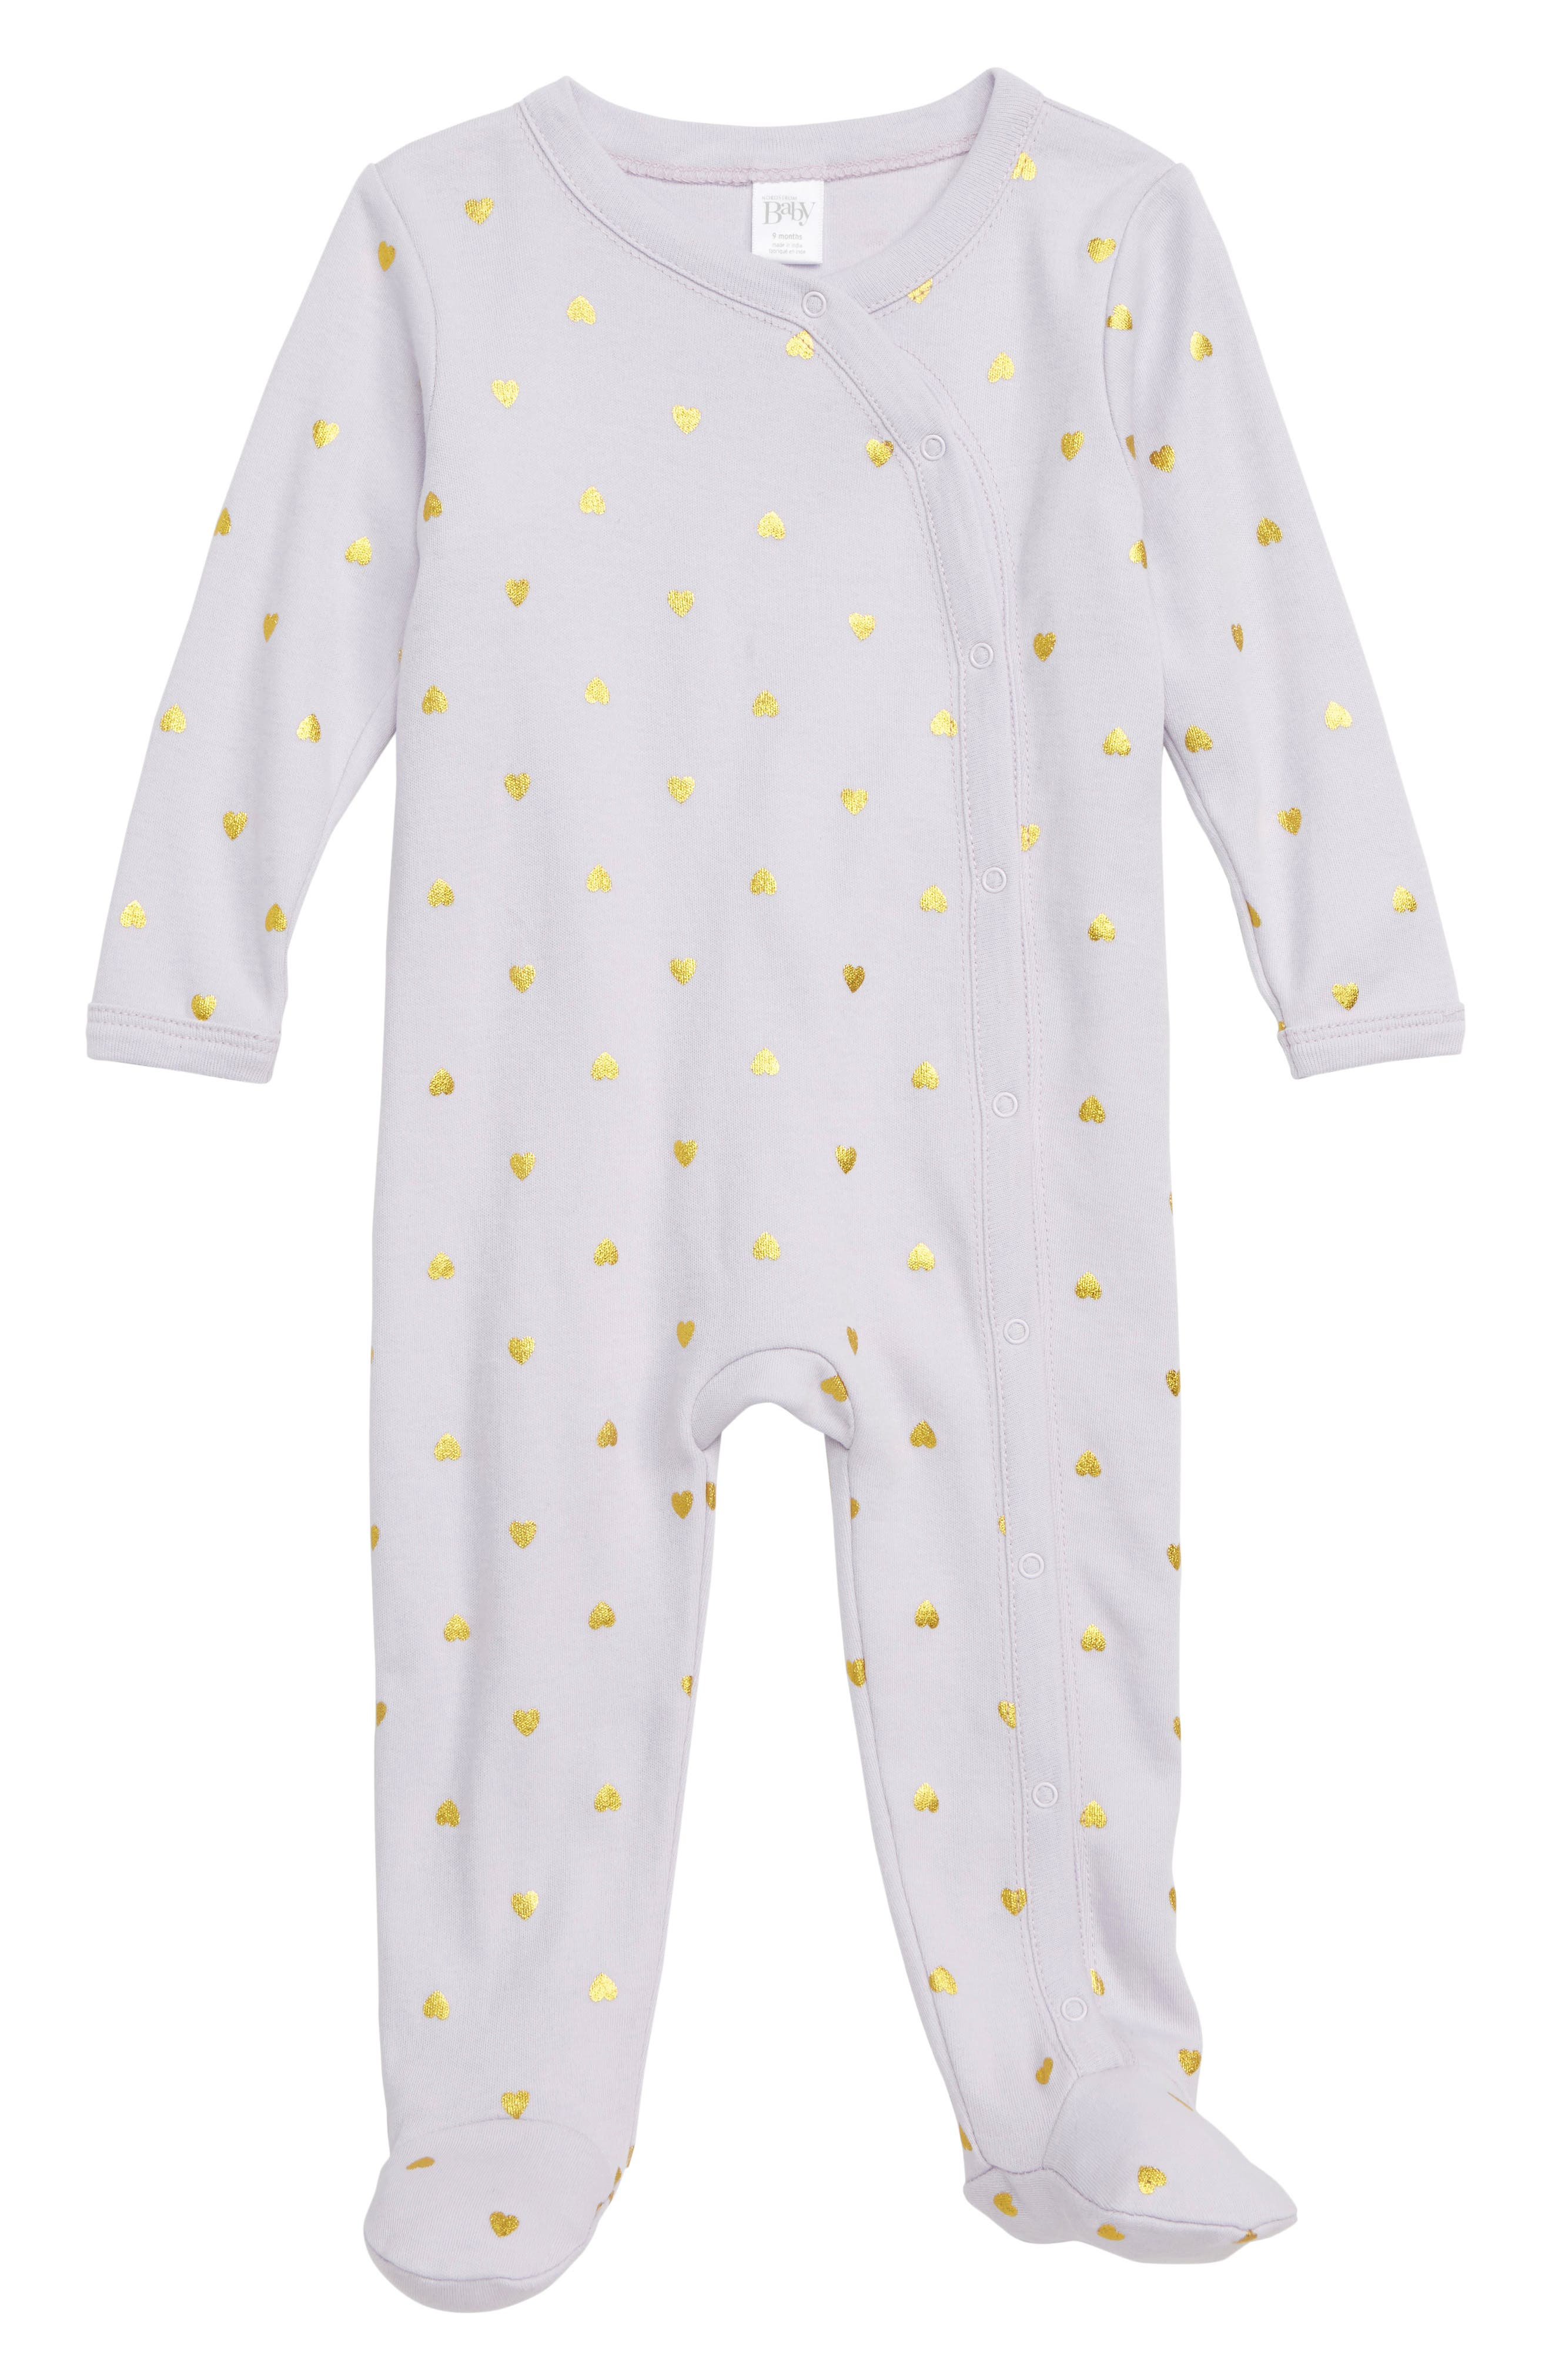 NORDSTROM BABY, Print Footie, Main thumbnail 1, color, PURPLE THISTLE HEARTS